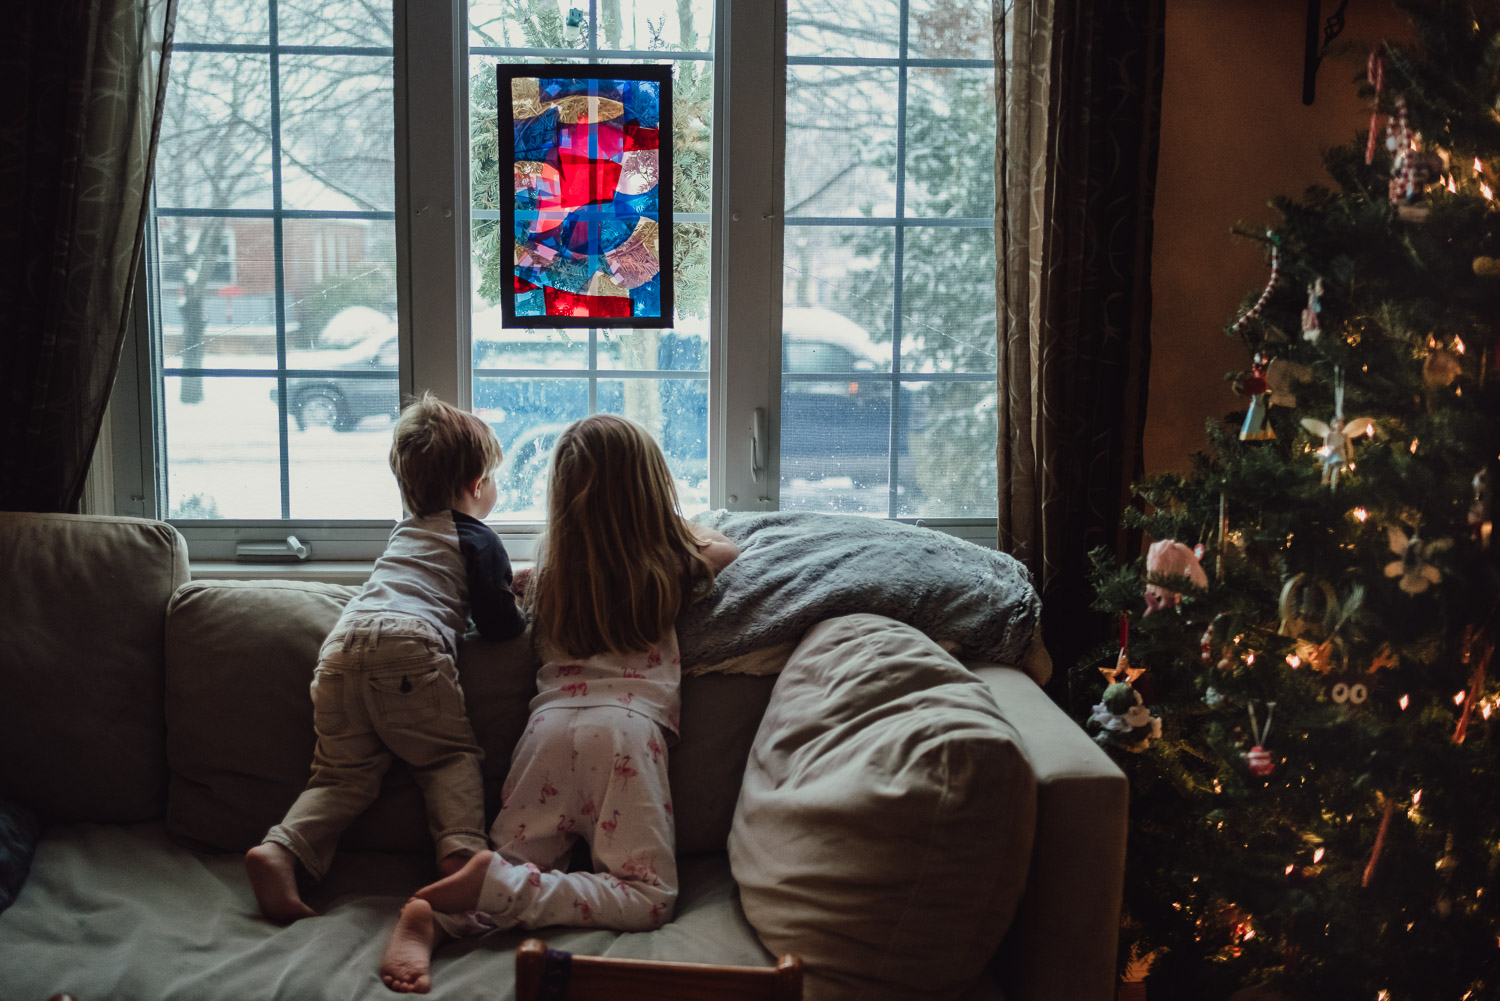 Kids watching the snow fall through a window next to the Christmas tree.